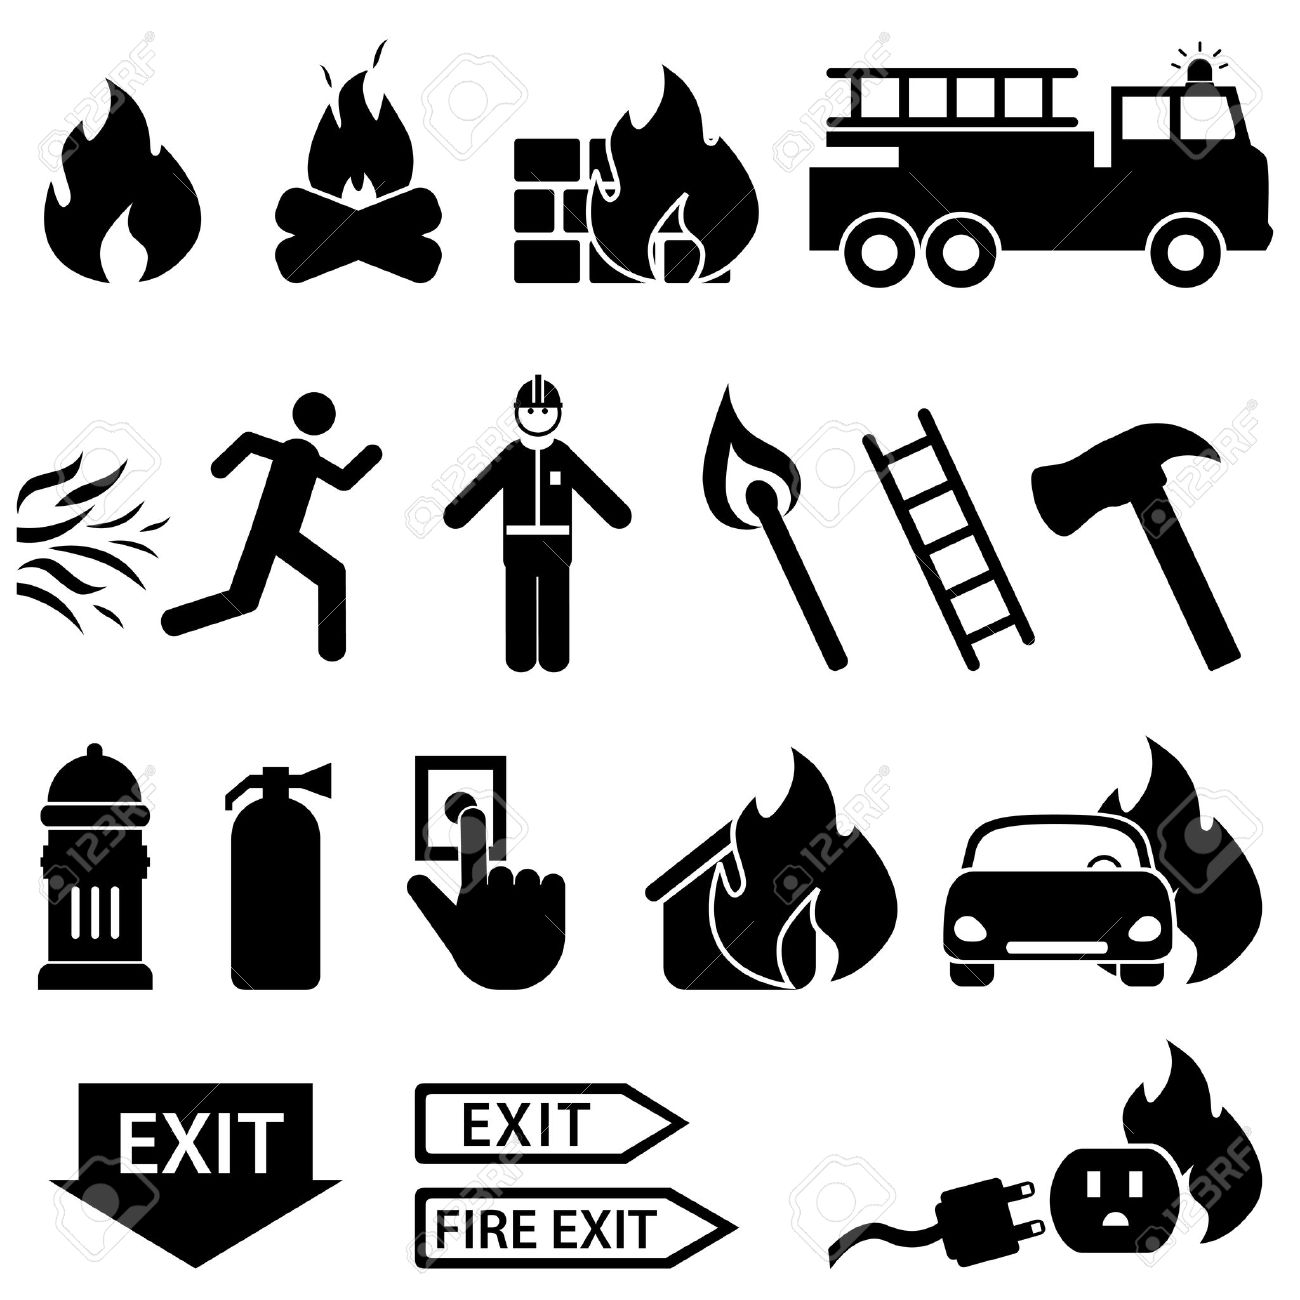 35,064 Fire Silhouette Stock Vector Illustration And Royalty Free.